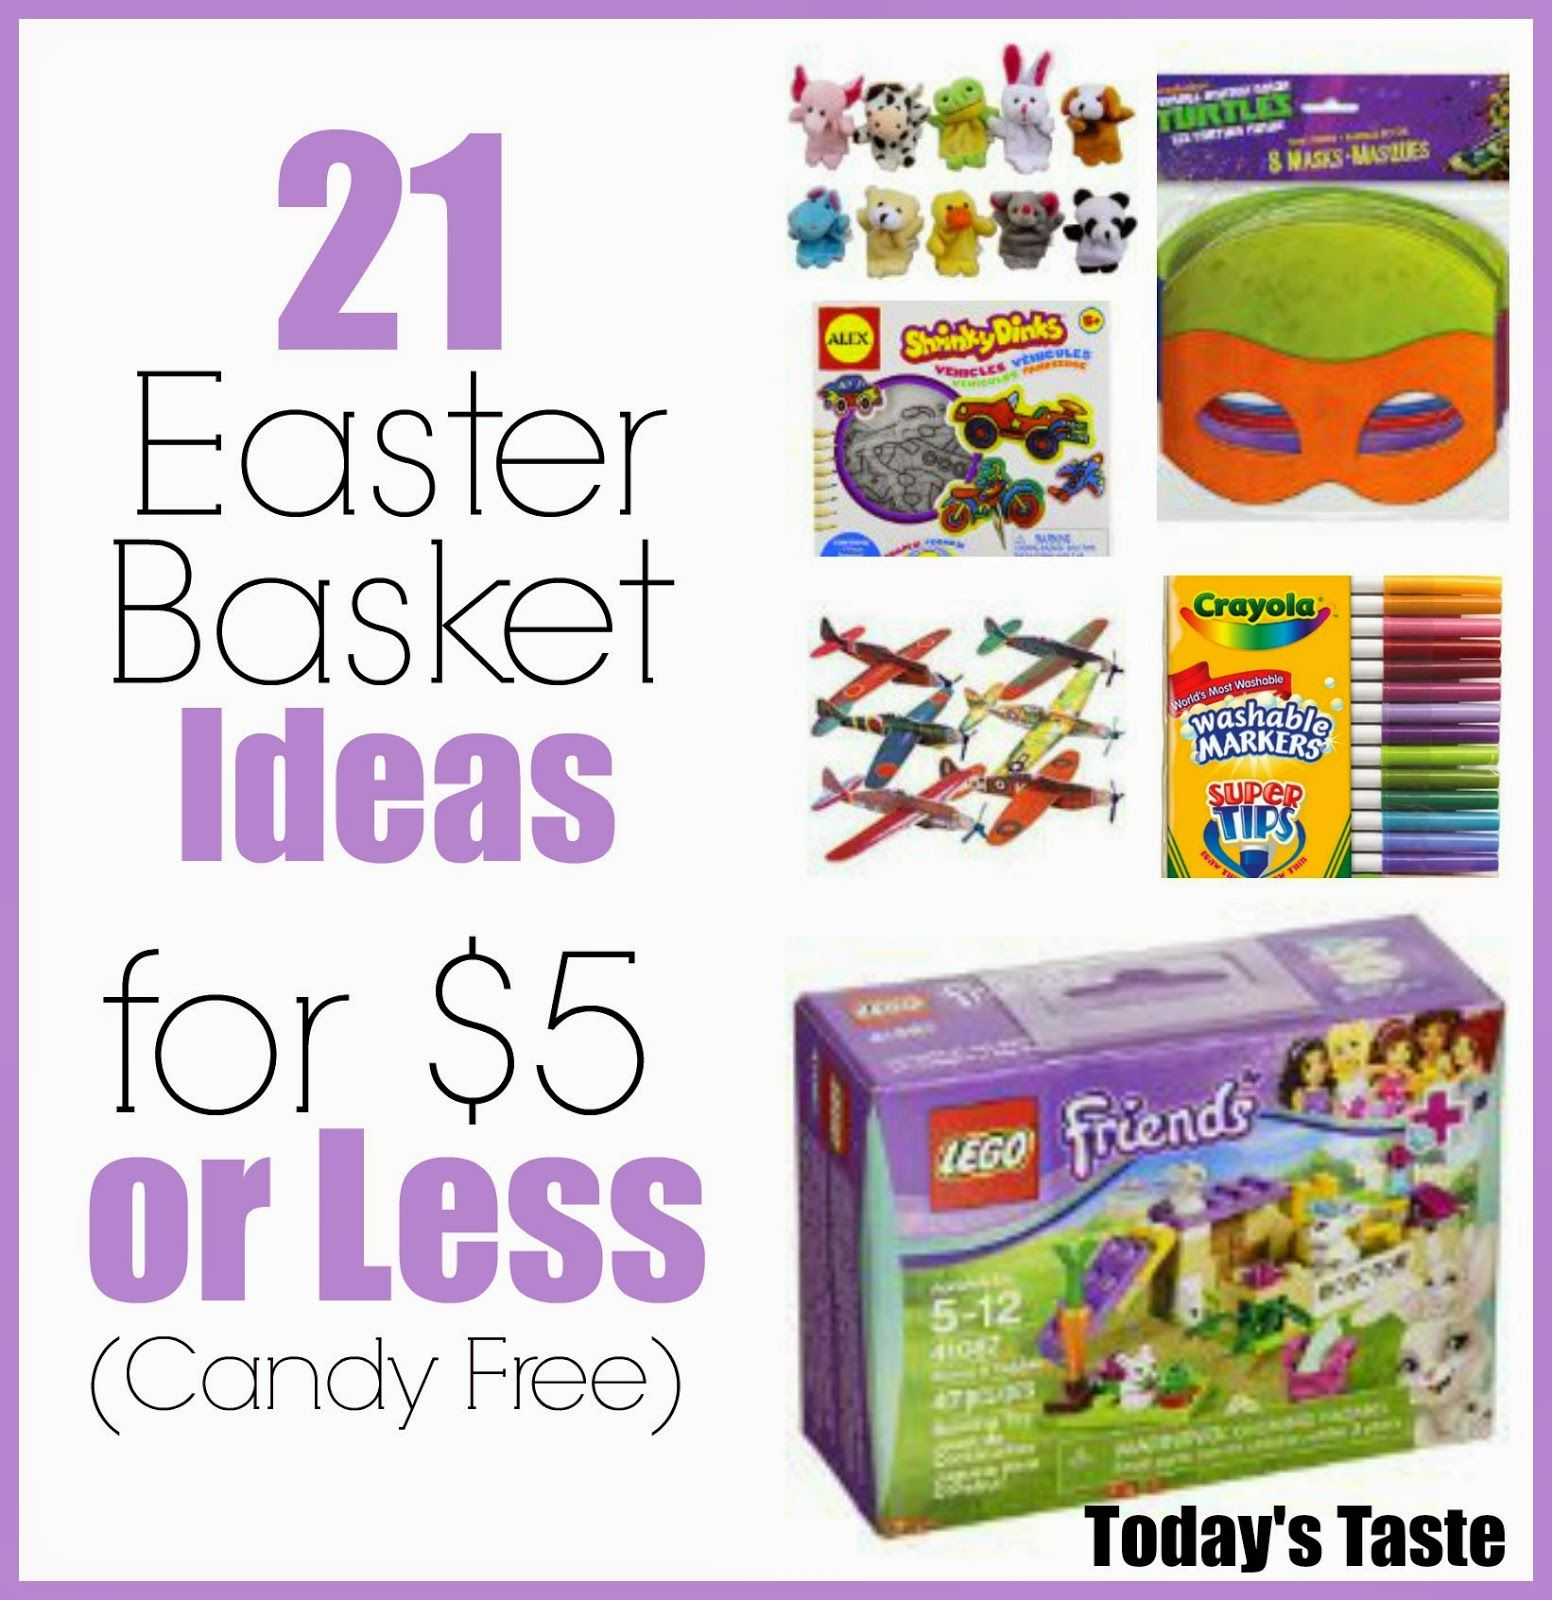 21 easter basket ideas that are 5 or less easter will be here 21 easter basket ideas that are 5 or less easter will be here before we negle Image collections